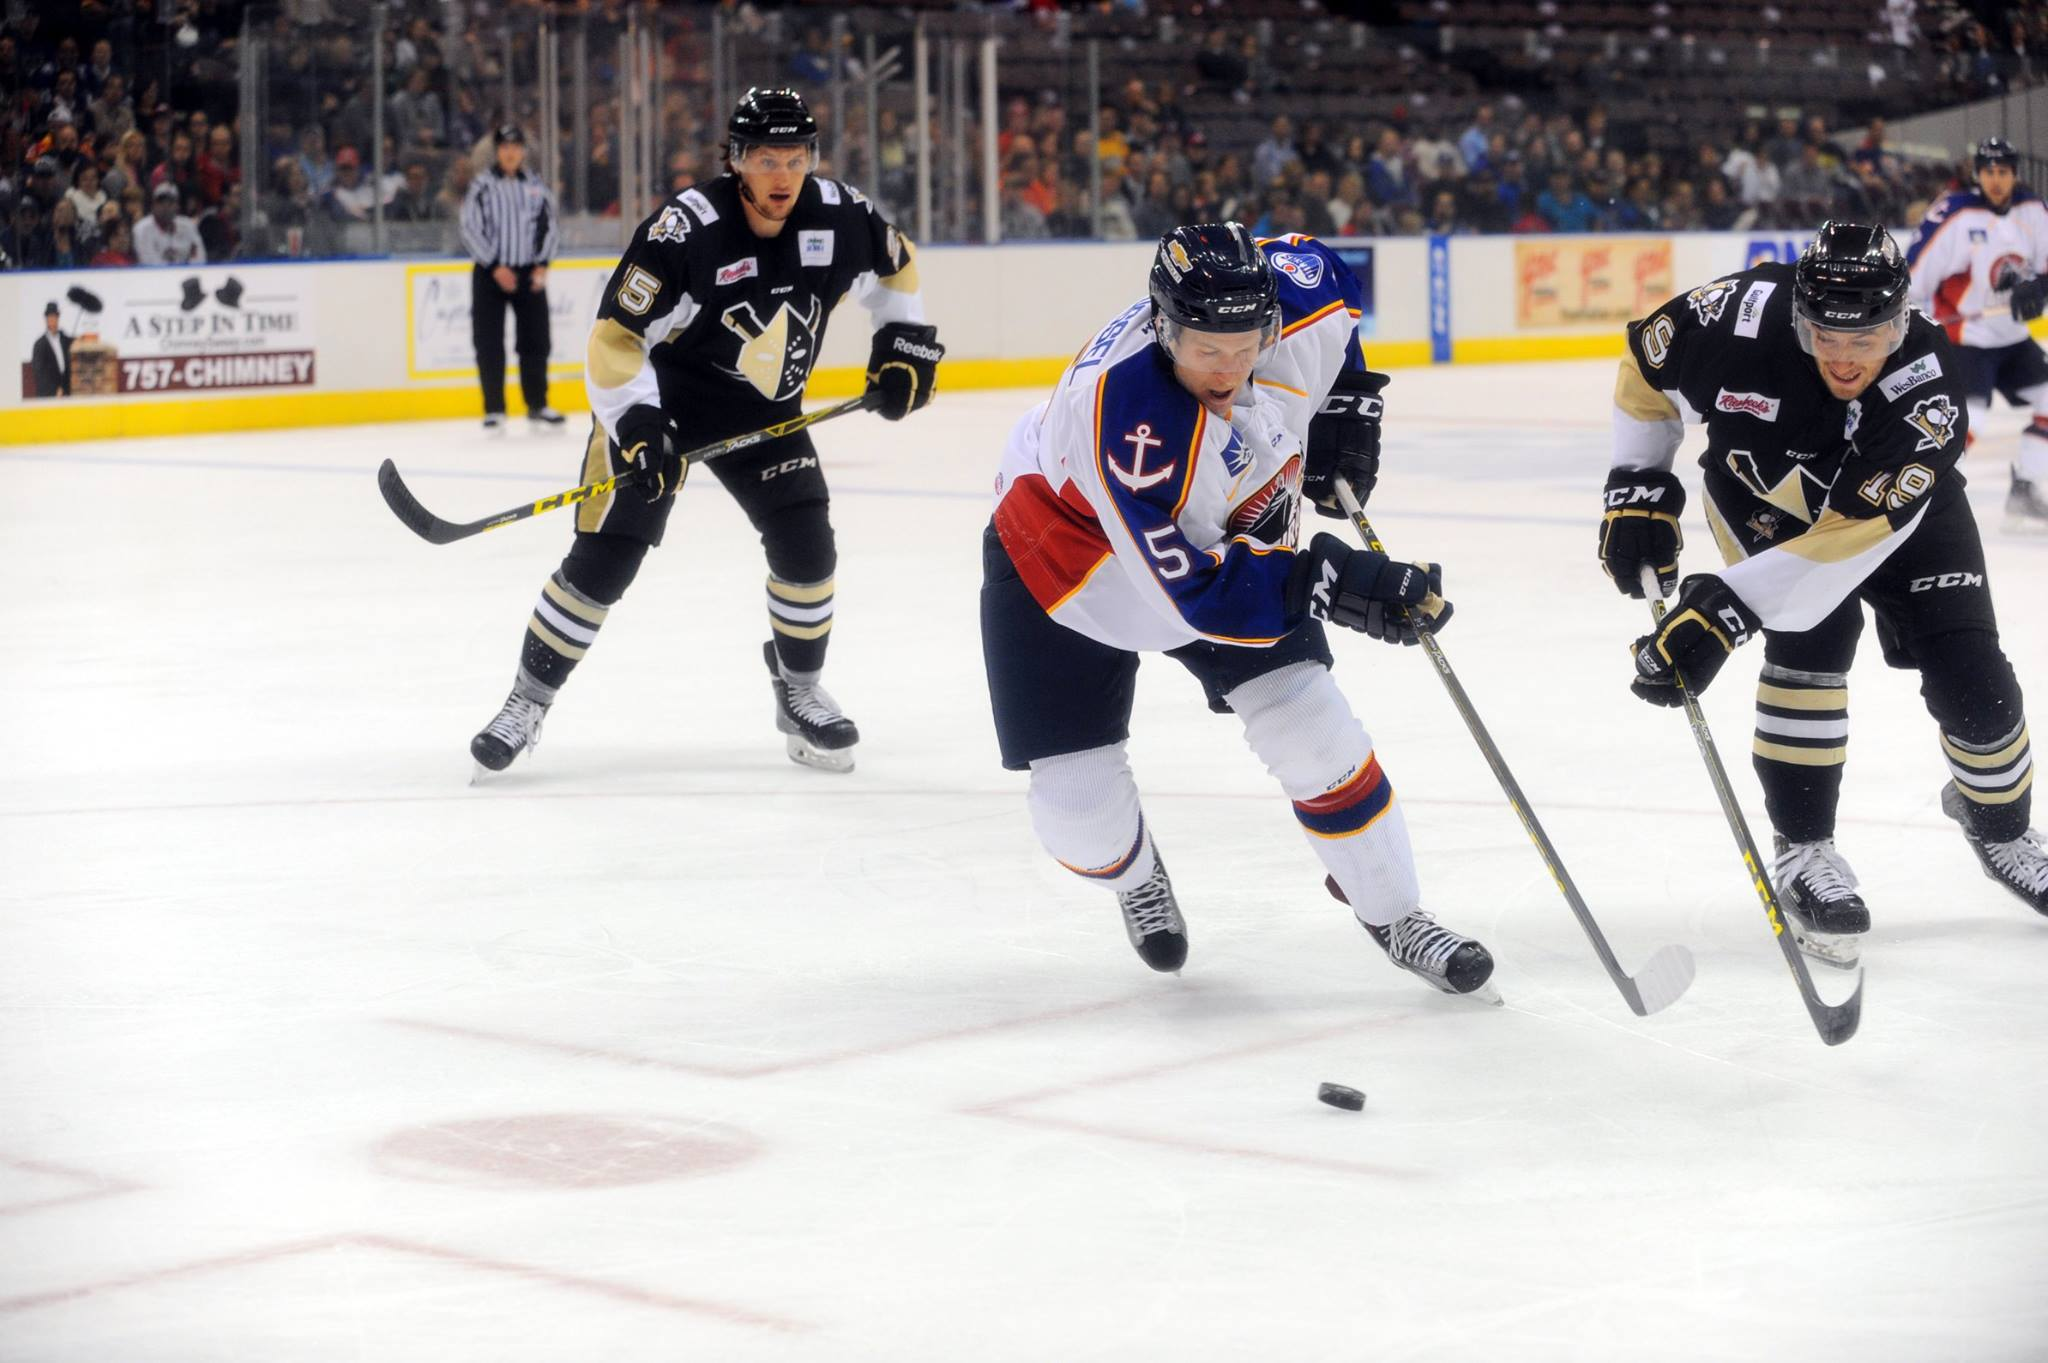 Defenseman Charles-Olivier Roussel currently leads the Norfolk Admirals with 19 Points (2G, 17A)